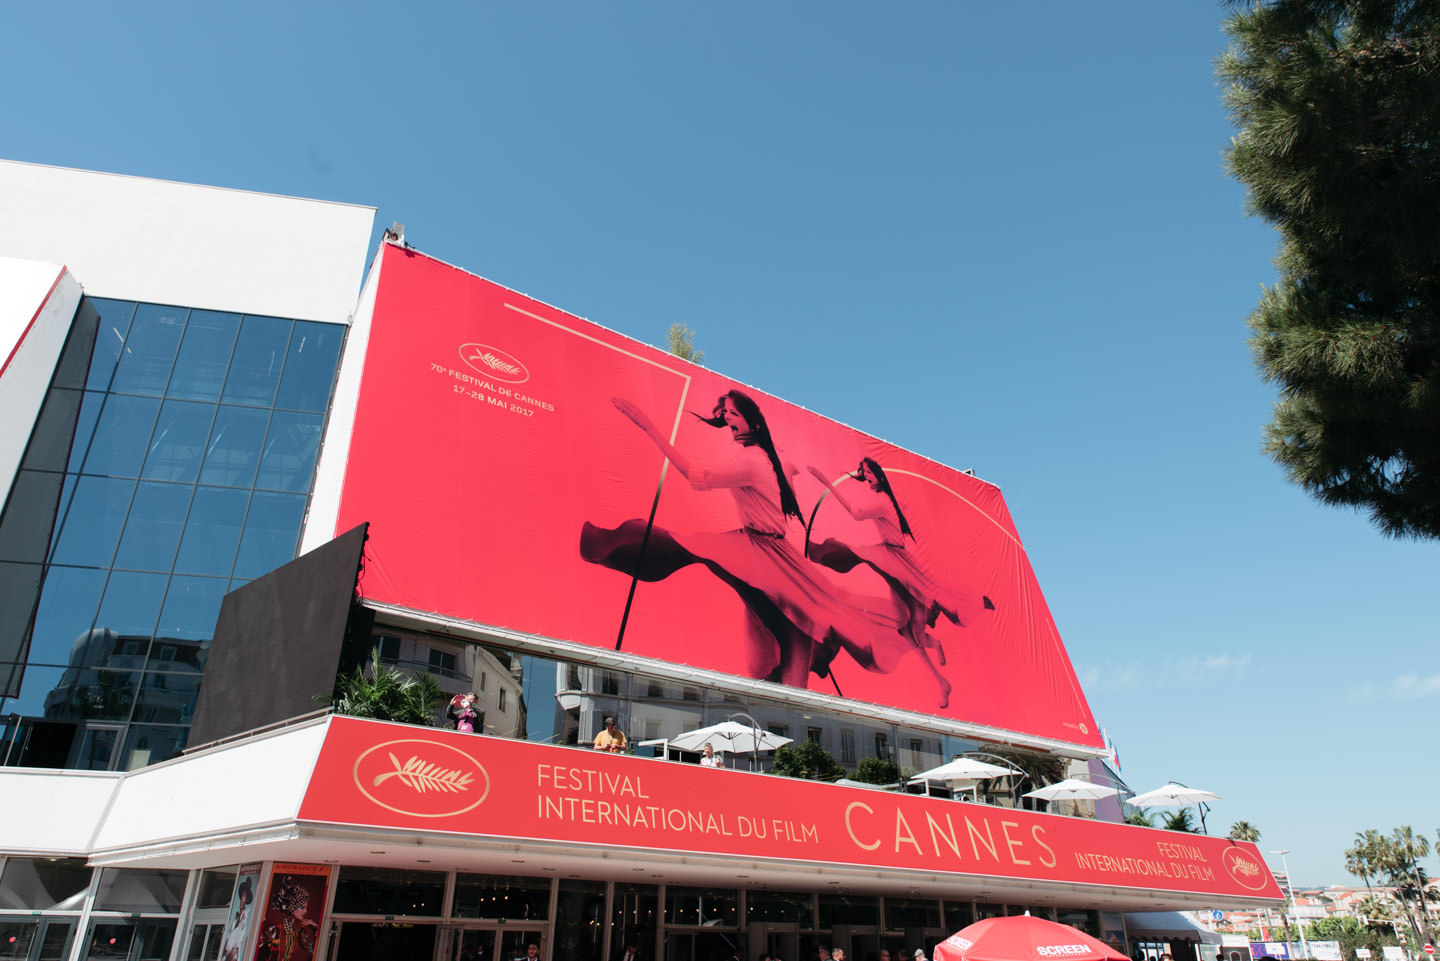 Blog-Mode-And-The-City-Lifestyle-cannes-Mastercard-22